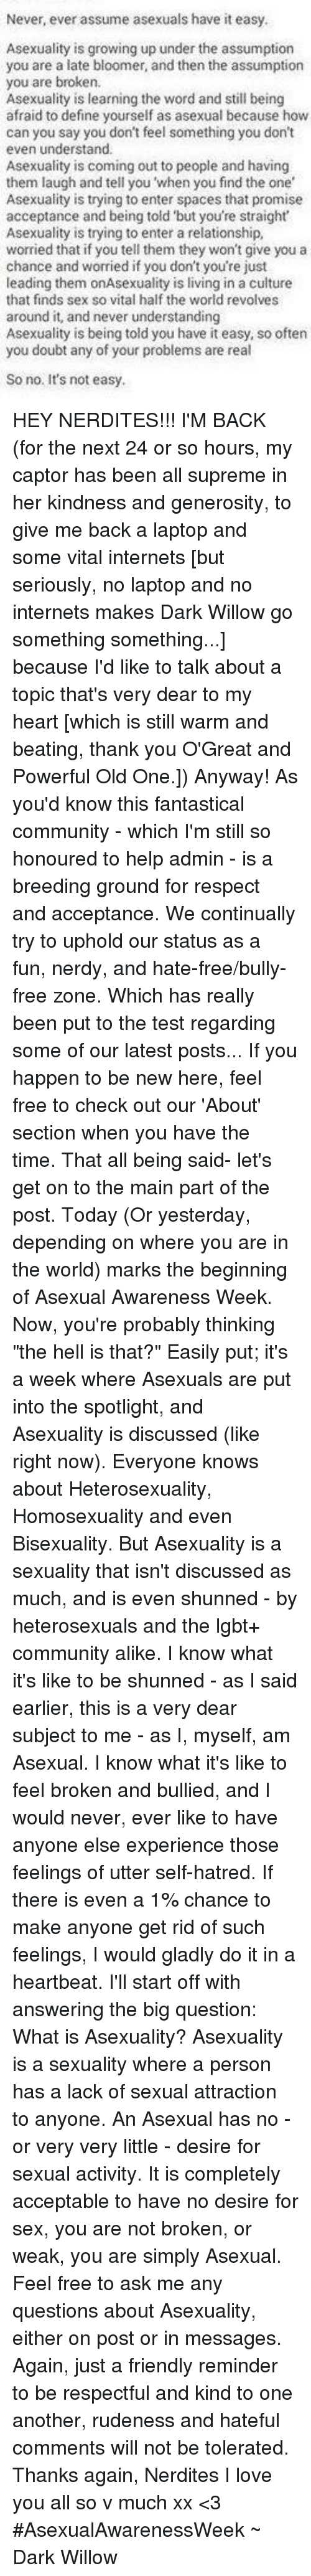 """Asexuality: Never, ever assume asexuals have it easy.  Asexuality is growing up under the assumption  you are a late bloomer, and then the assumption  you are broken.  Asexuality is learning the word and still being  afraid to define yourself as asexual because how  can you say you don't feel something you don't  even understand.  Asexuality is coming out to people and having  them laugh and tell you 'when you find the one  Asexuality is trying to enter spaces that promise  acceptance and being told but you're straight  Asexuality is trying to enter a relationship,  worried that if you tell them they won't give you a  chance and worried if you don't you're just  leading them onAsexuality is living in a culture  that finds sex so vital half the world revolves  around it, and never understanding  Asexuality is being told you have it easy, so often  you doubt any of your problems are real  So no. It's not easy. HEY NERDITES!!! I'M BACK (for the next 24 or so hours, my captor has been all supreme in her kindness and generosity, to give me back a laptop and some vital internets [but seriously, no laptop and no internets makes Dark Willow go something something...] because I'd like to talk about a topic that's very dear to my heart [which is still warm and beating, thank you O'Great and Powerful Old One.]) Anyway! As you'd know this fantastical community - which I'm still so honoured to help admin - is a breeding ground for respect and acceptance. We continually try to uphold our status as a fun, nerdy, and hate-free/bully-free zone. Which has really been put to the test regarding some of our latest posts... If you happen to be new here, feel free to check out our 'About' section when you have the time. That all being said- let's get on to the main part of the post. Today (Or yesterday, depending on where you are in the world) marks the beginning of Asexual Awareness Week. Now, you're probably thinking """"the hell is that?"""" Easily put; it's a week where Asexuals are put int"""